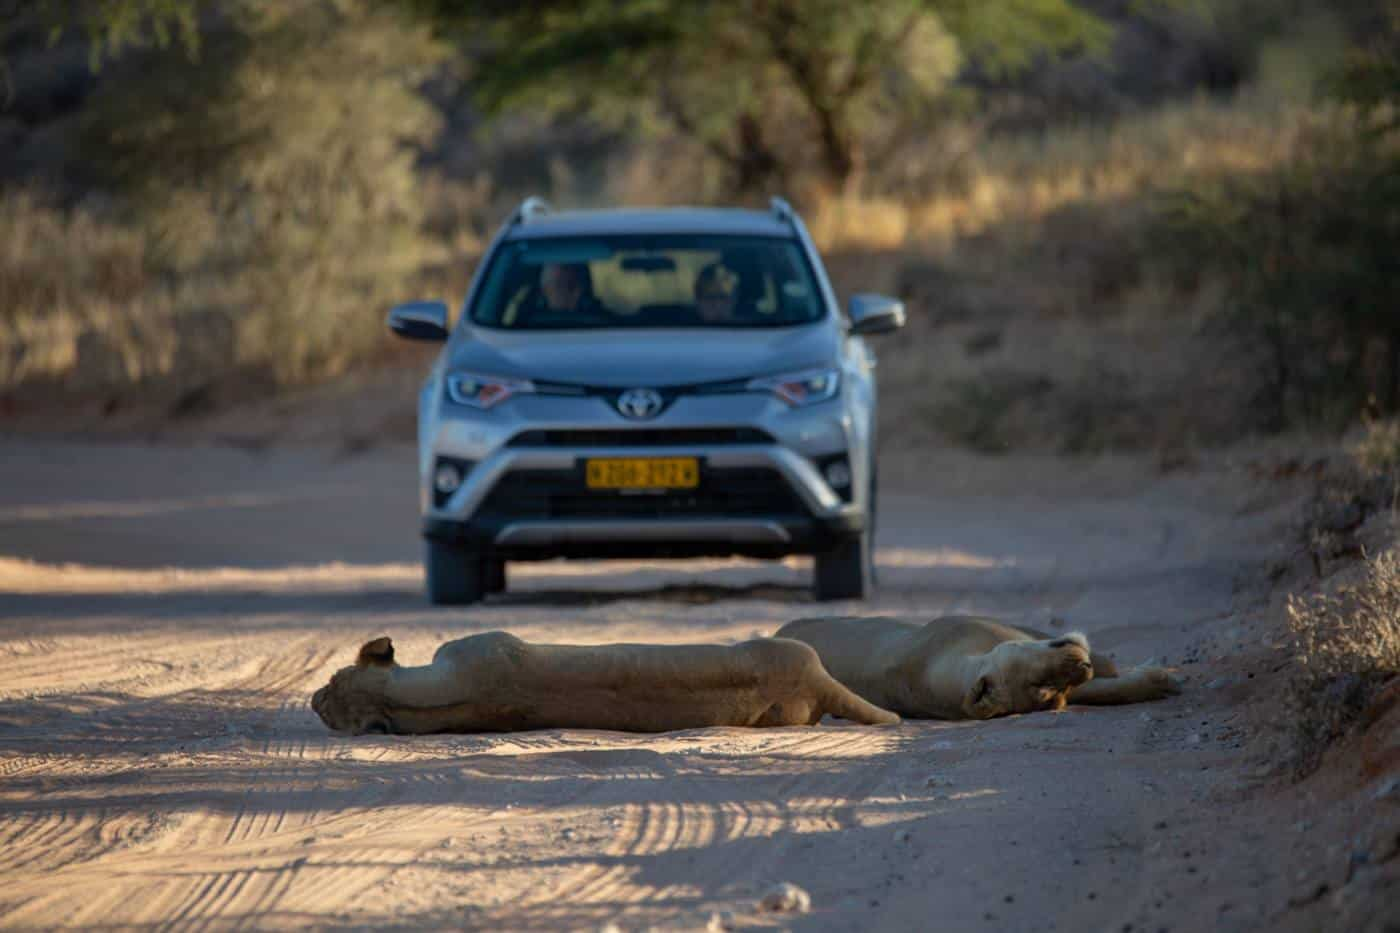 self drive safari in kgalagadi transfrontier park lions on the road